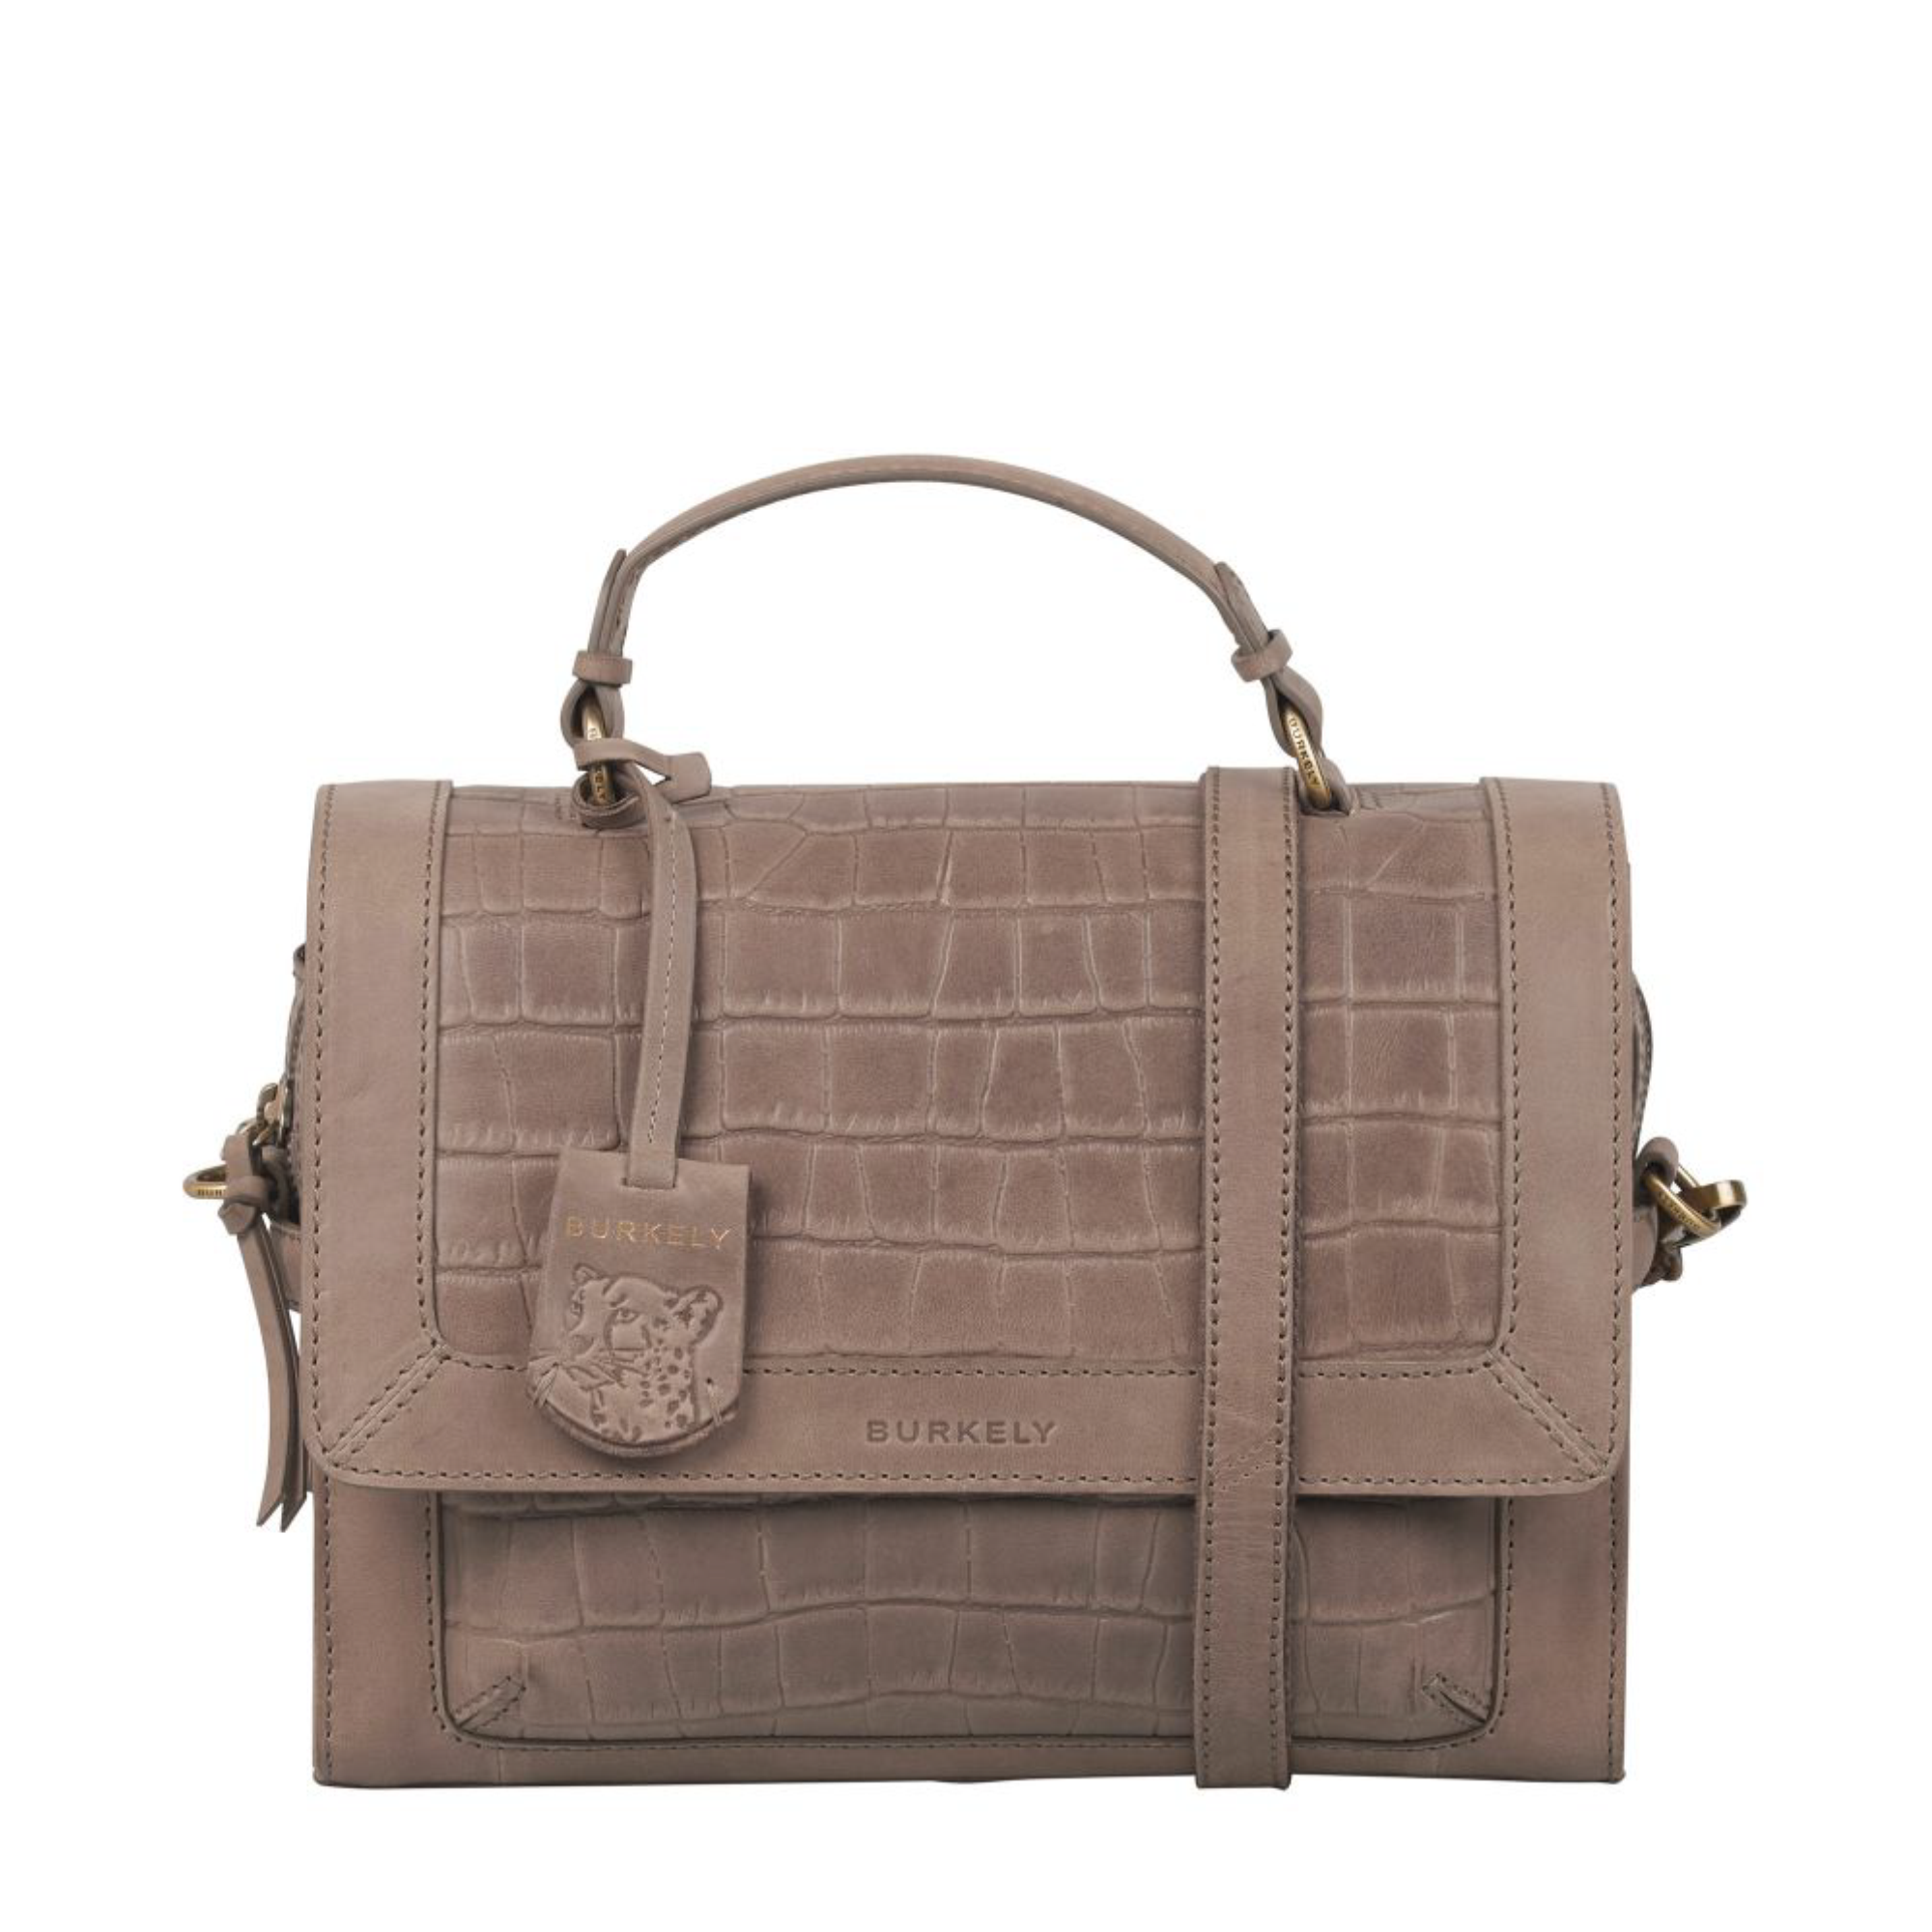 Burkely 1000124 Citybag 29.25 Taupe